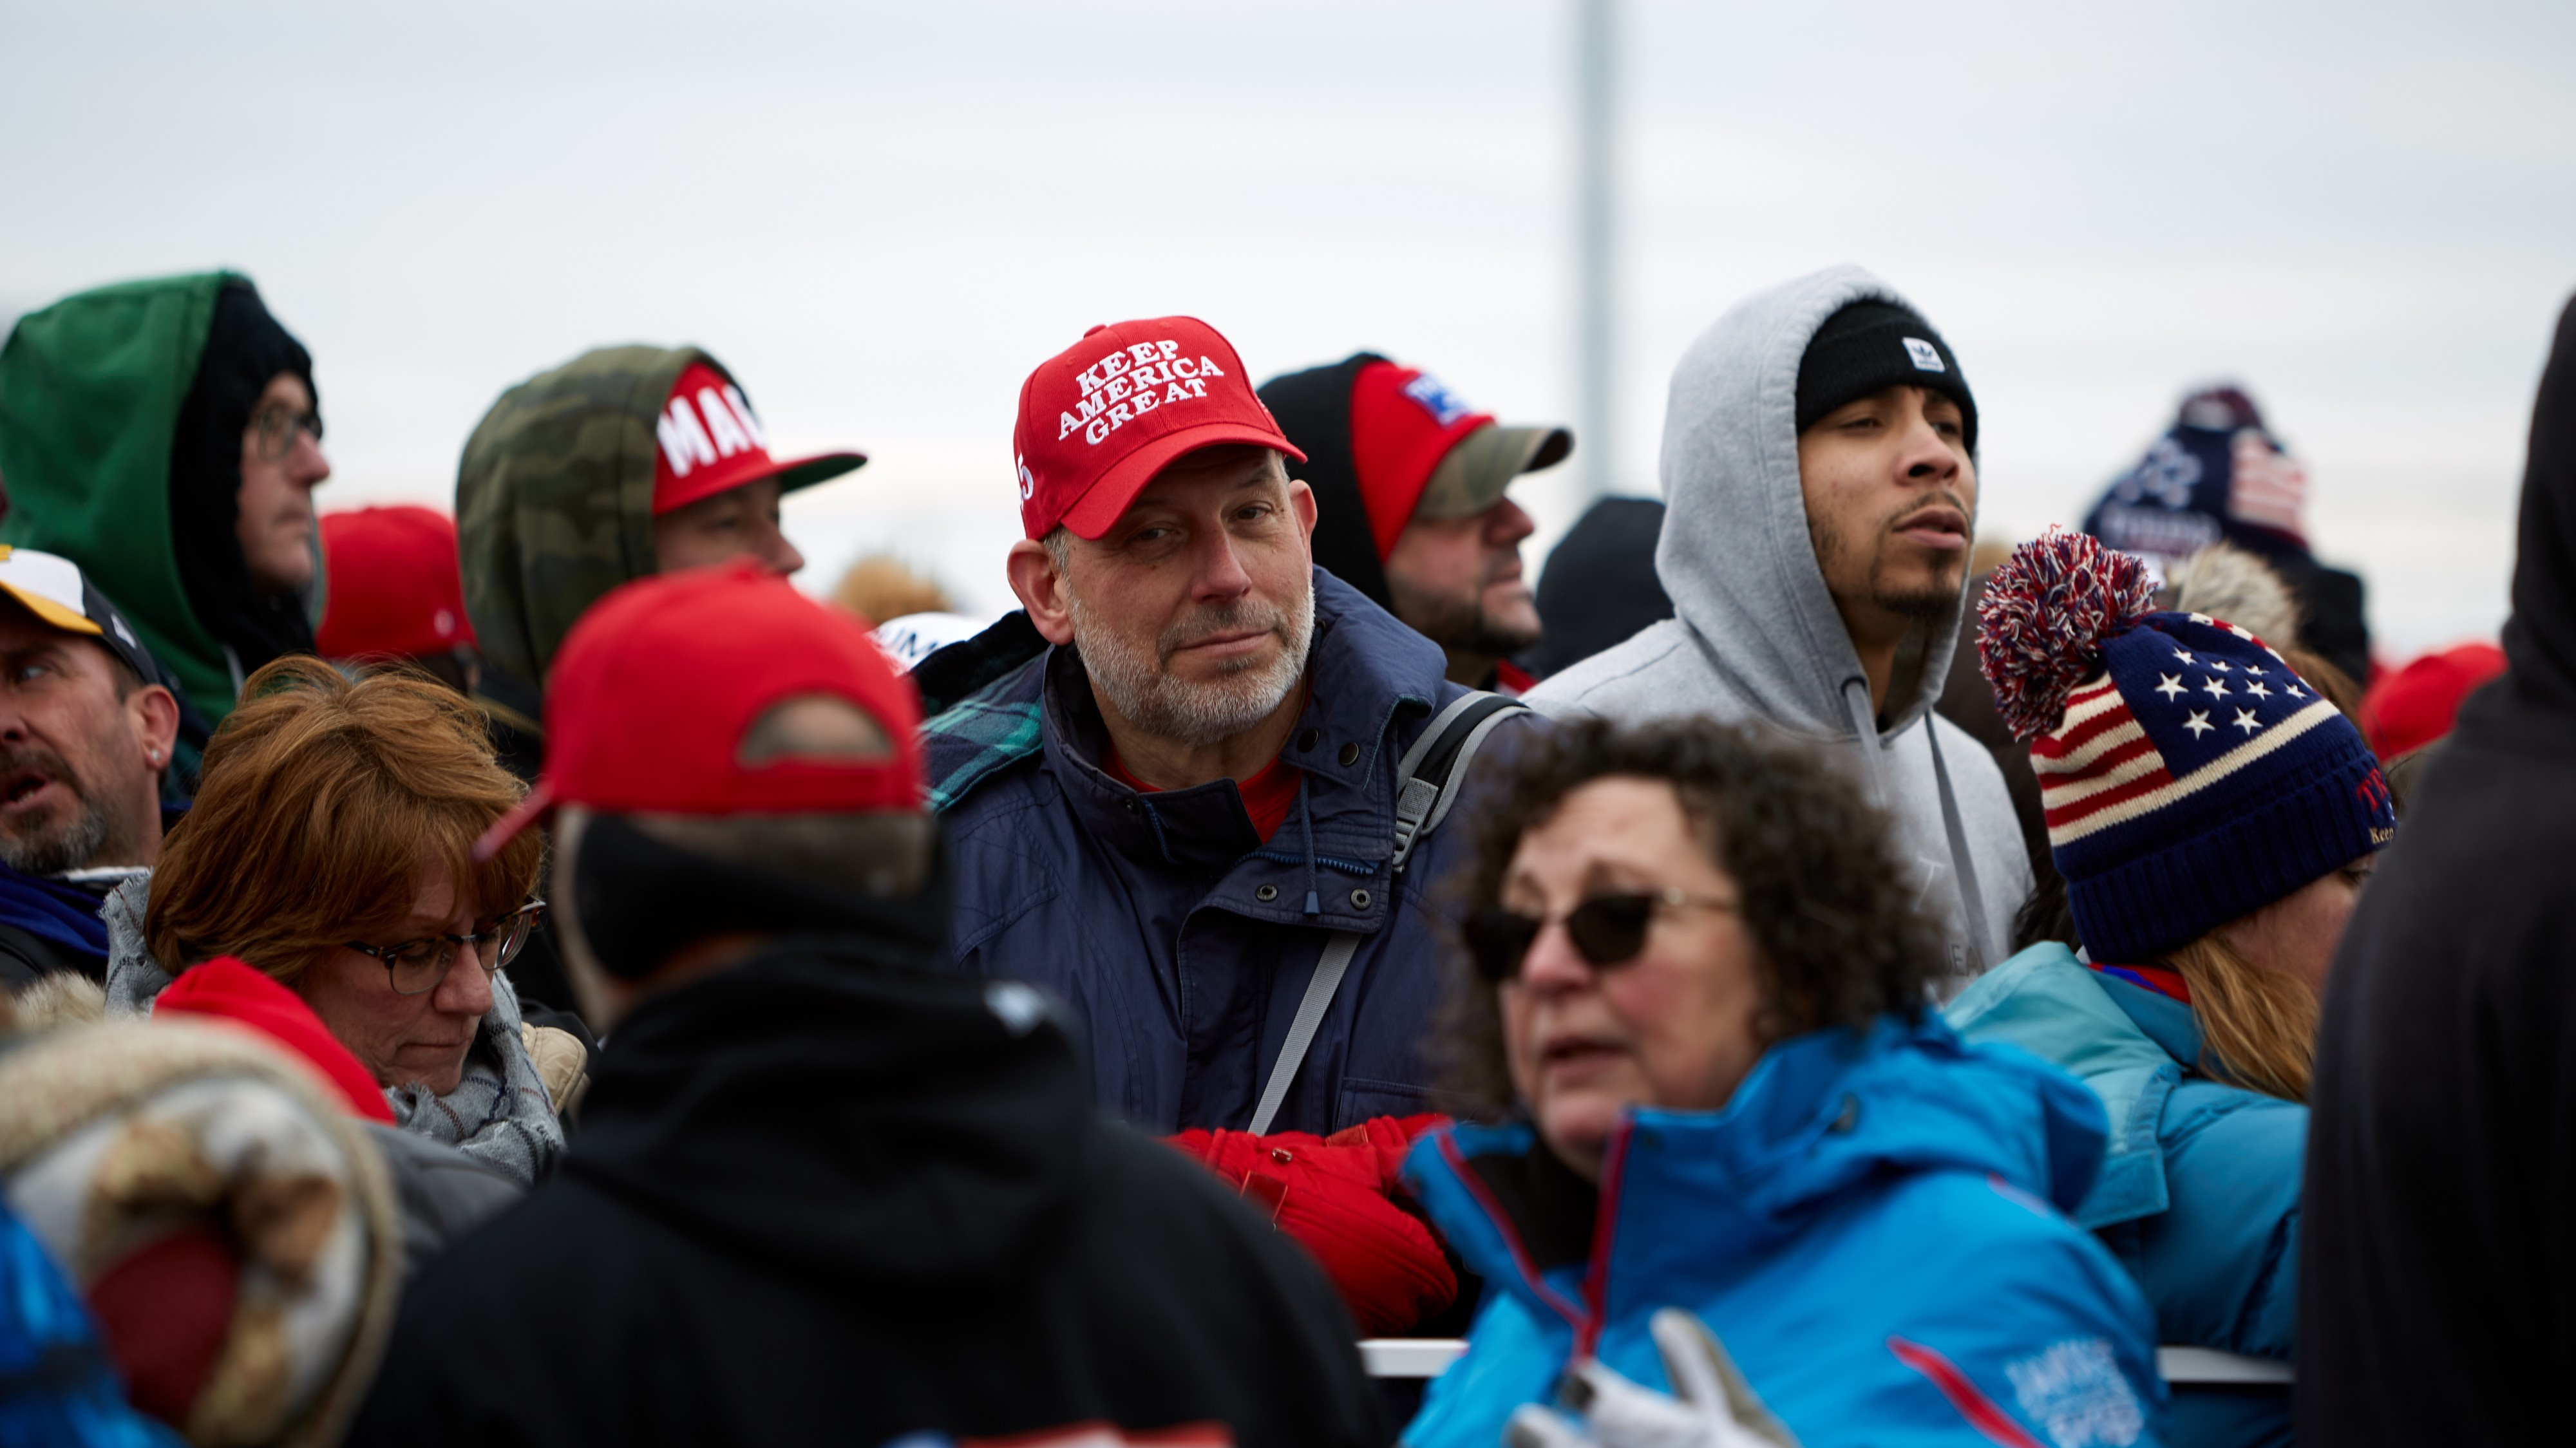 Trump supporters, one man wearing a MAGA hat.